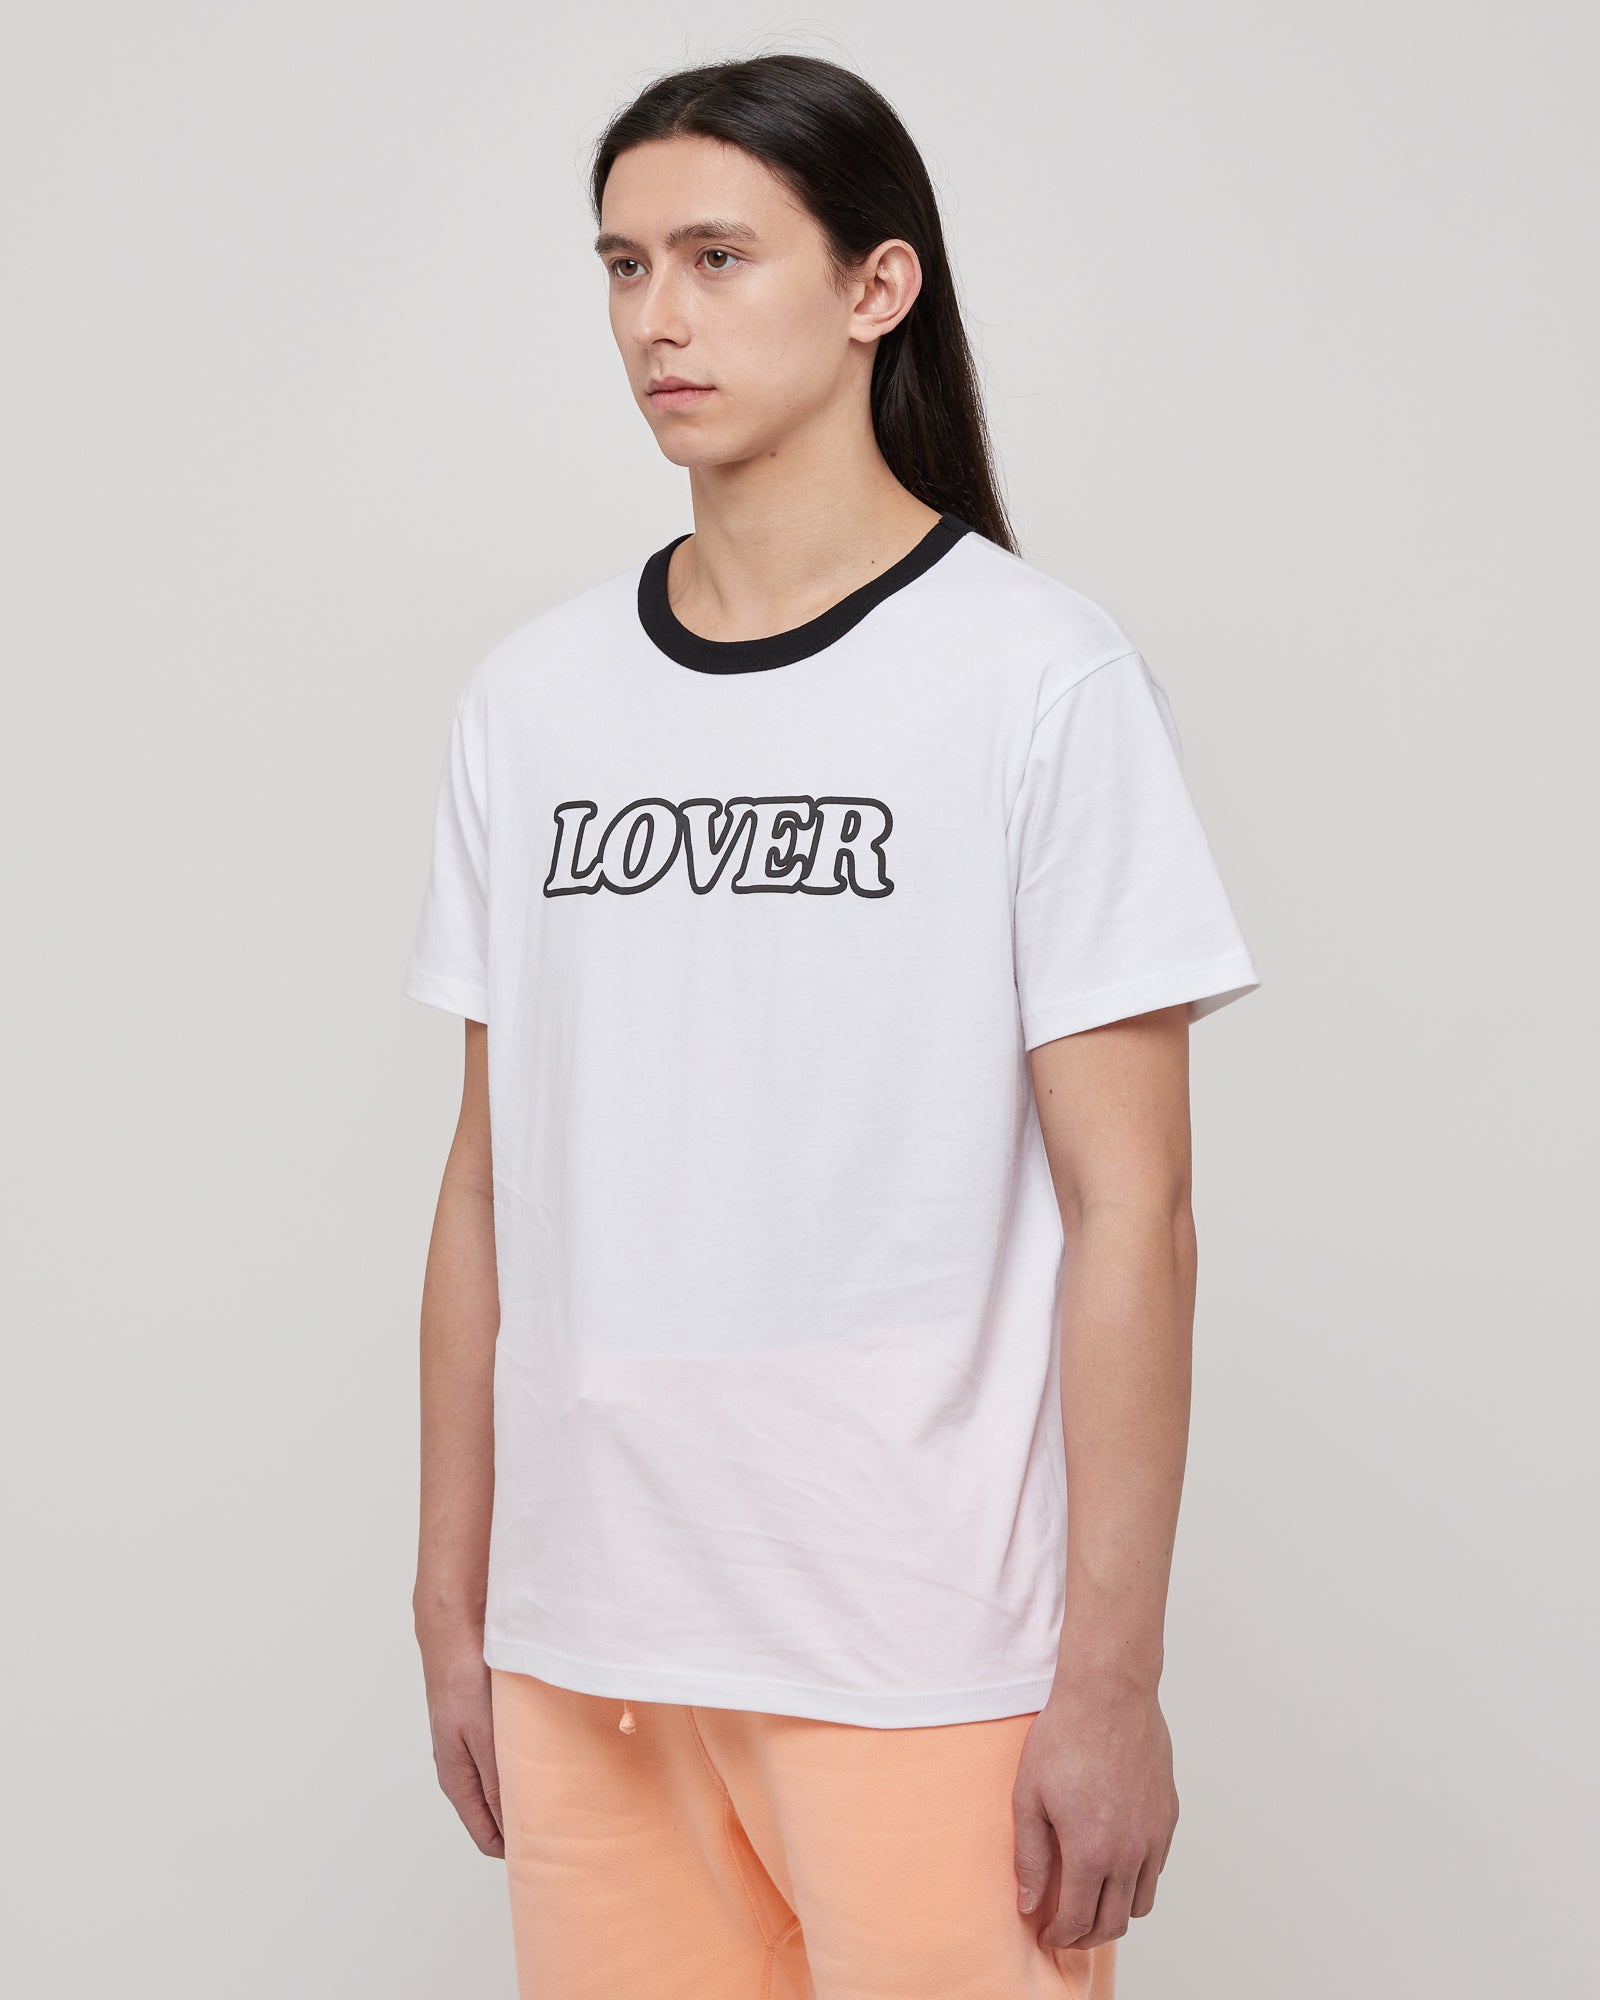 Lover Ringer T-Shirt in White & Black